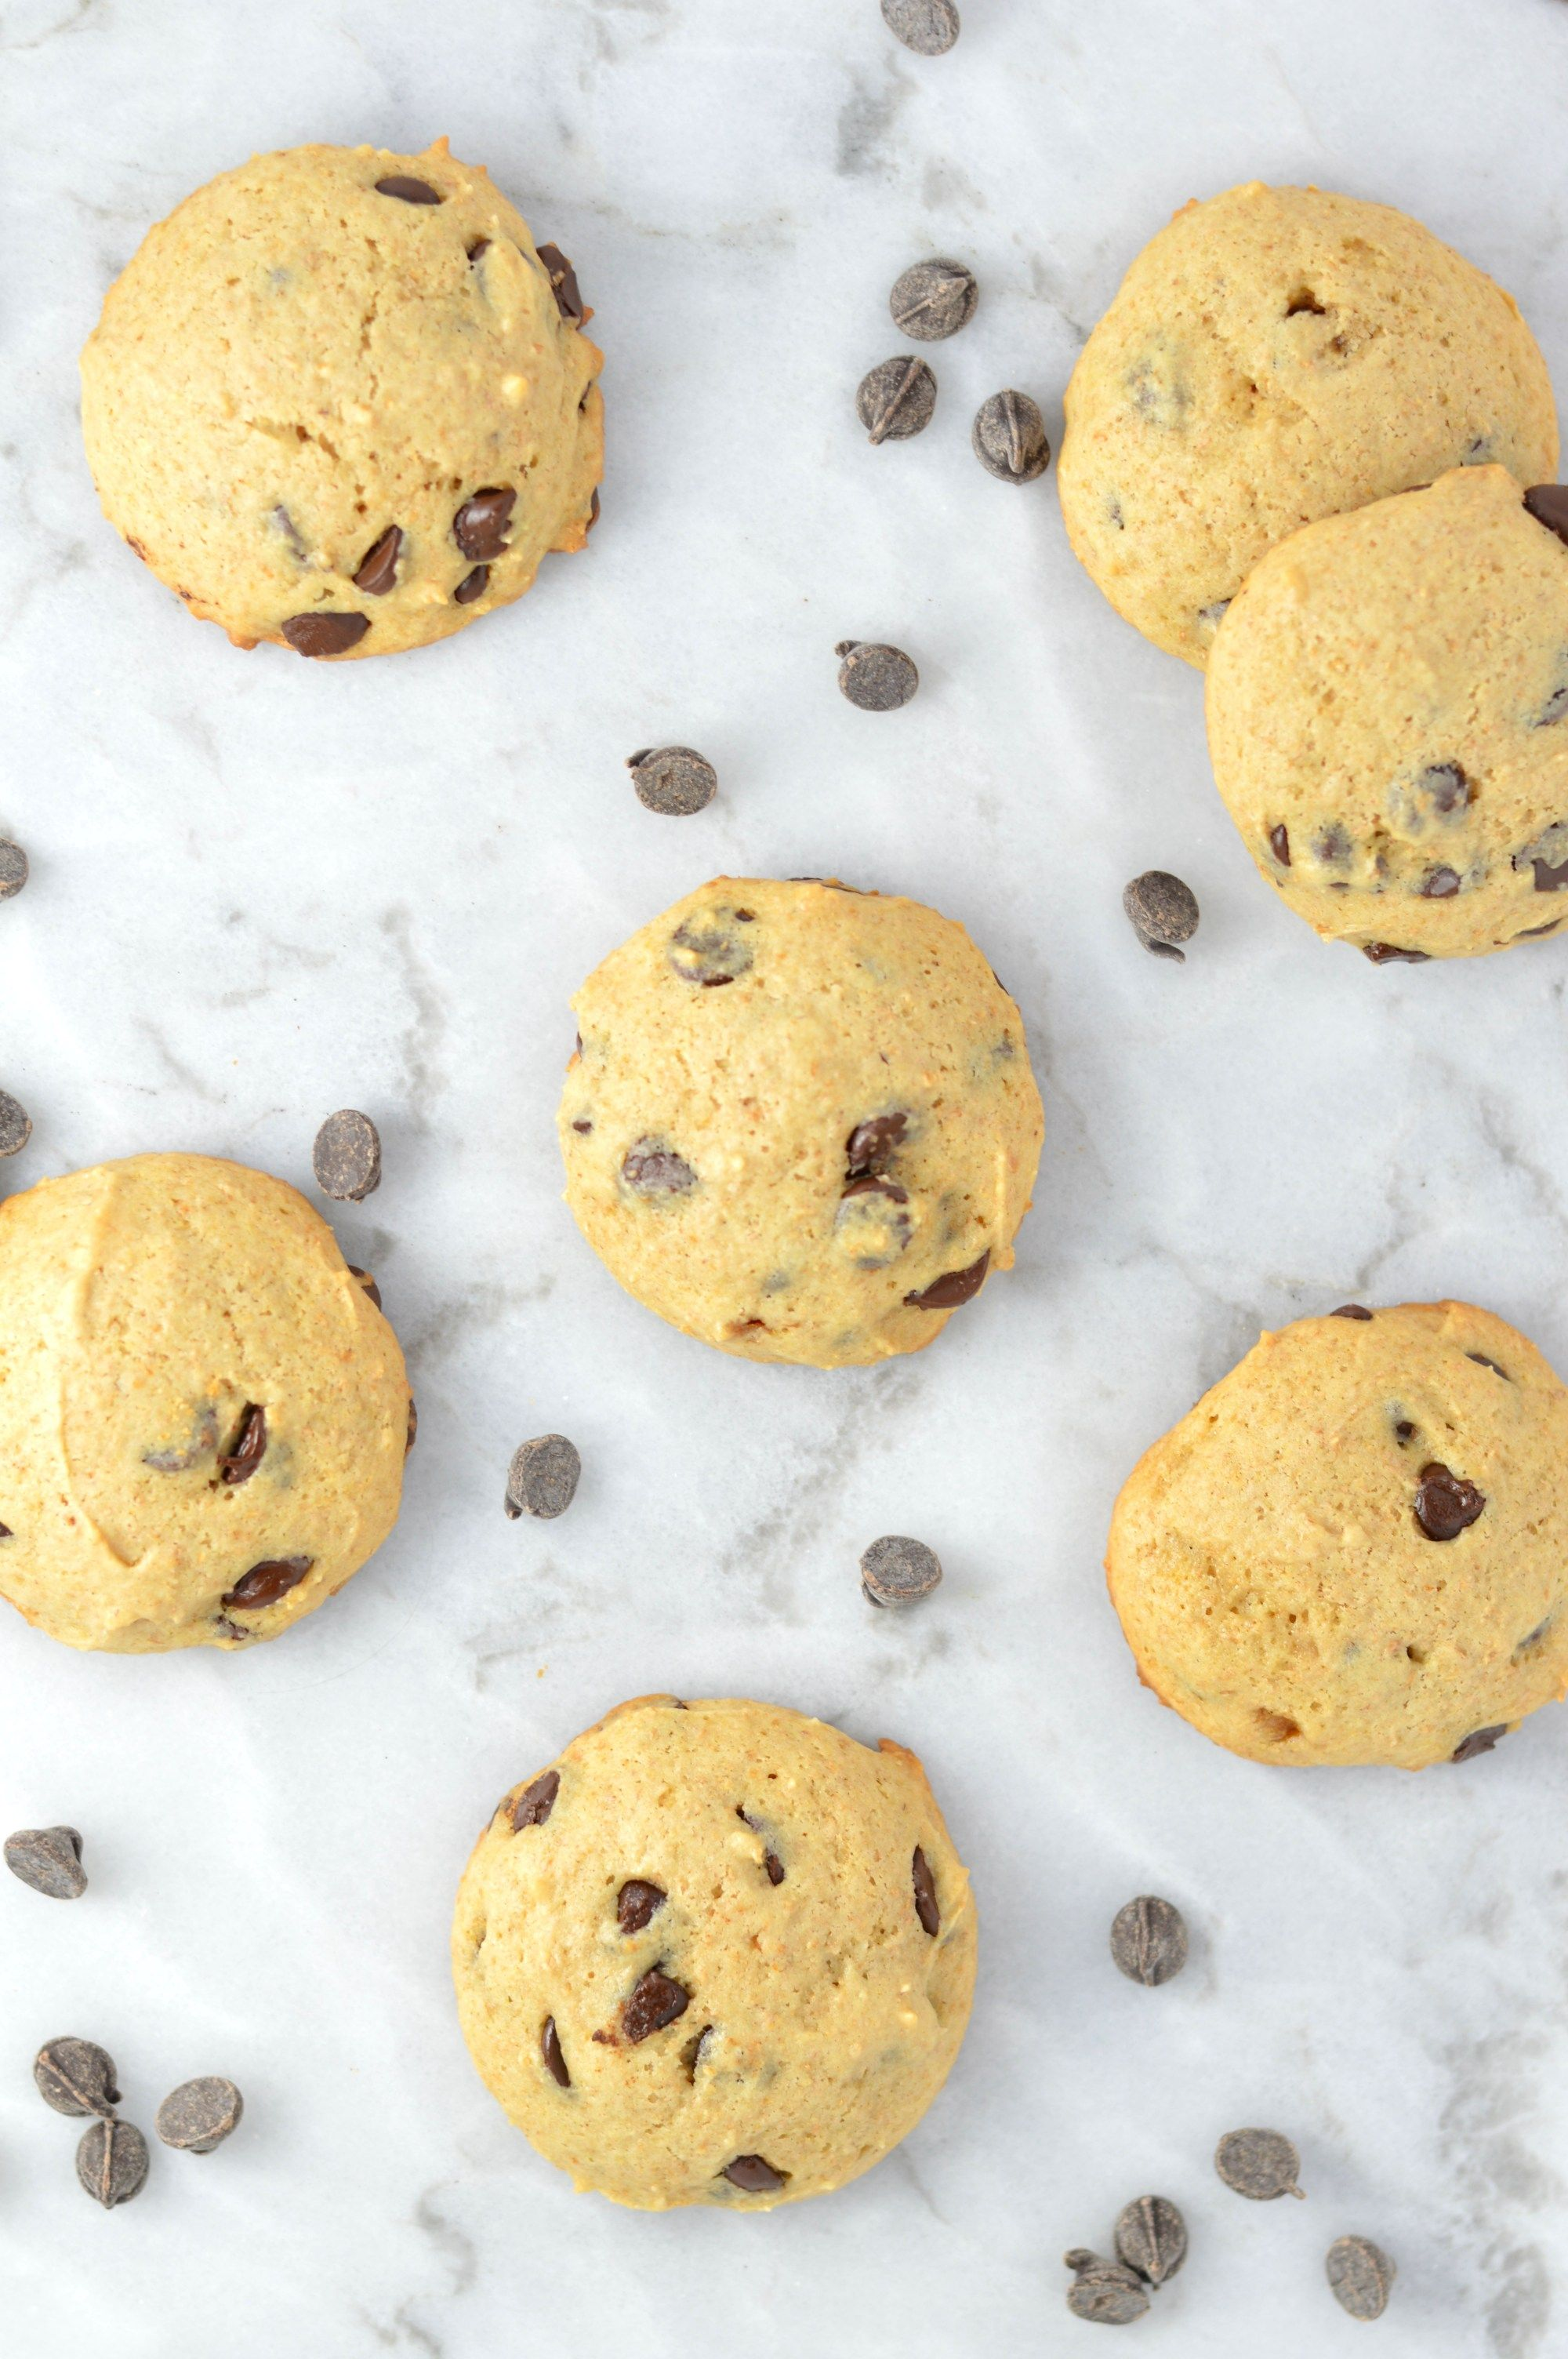 Sour Cream Chocolate Chip Cookies A Taste Of Madness Recipe Nut Free Desserts Chocolate Chip Cookies Favorite Dessert Recipes